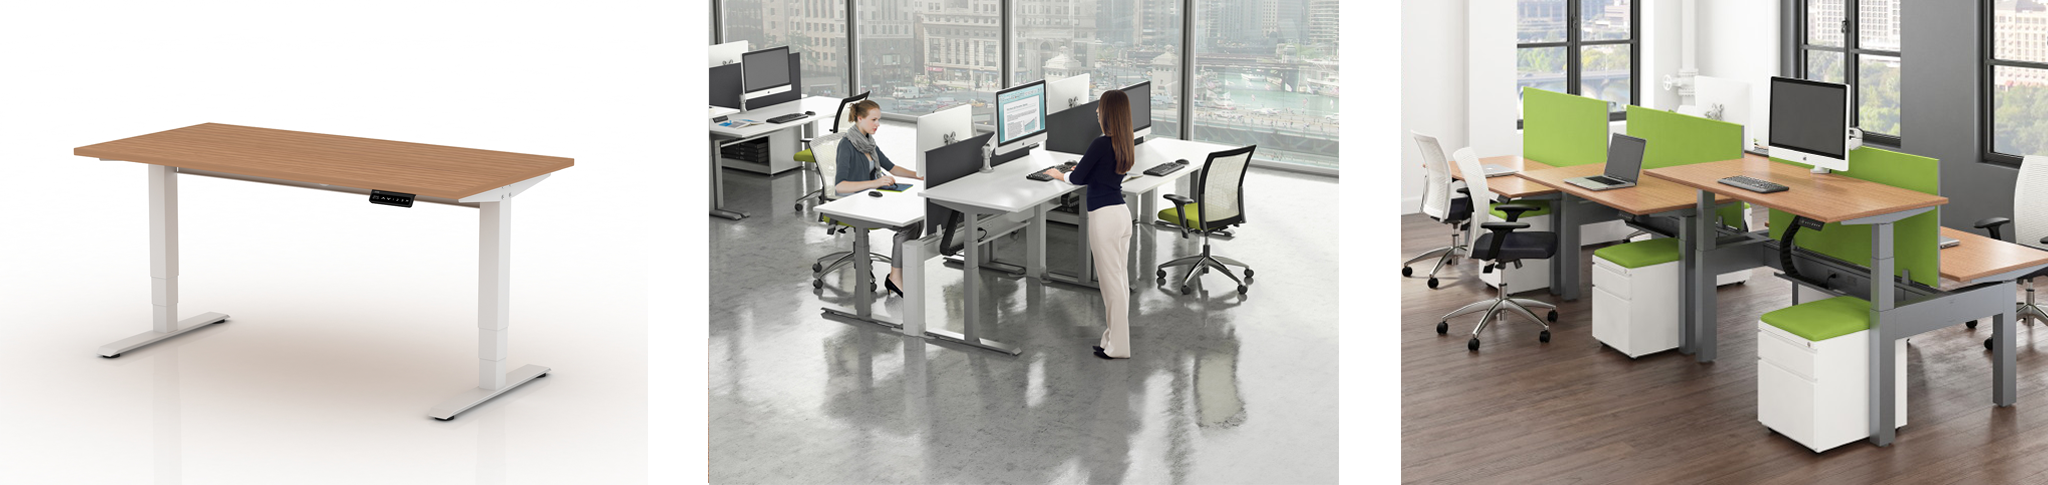 Office Furniture Heaven - Activ Height Adjustable Tables